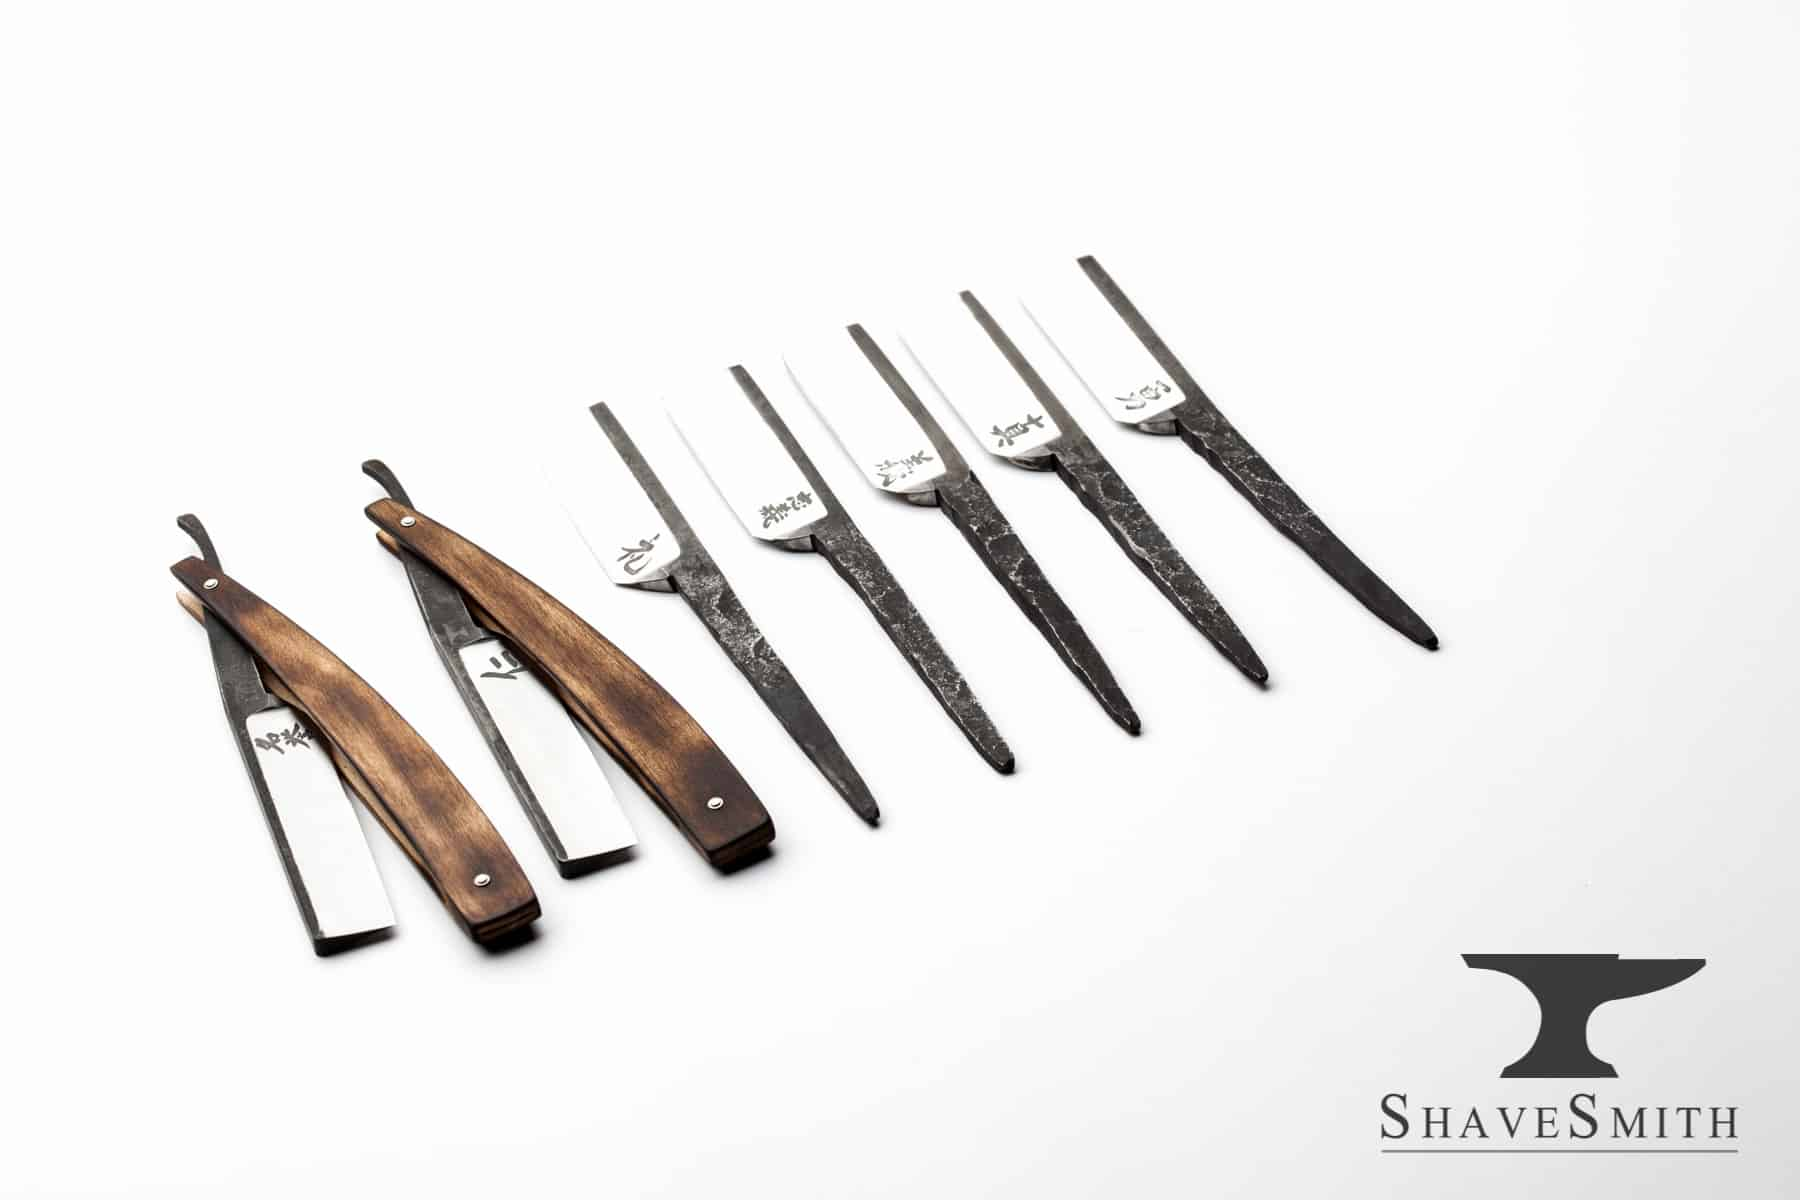 Only two materials are featured in this set: steel, maple. 